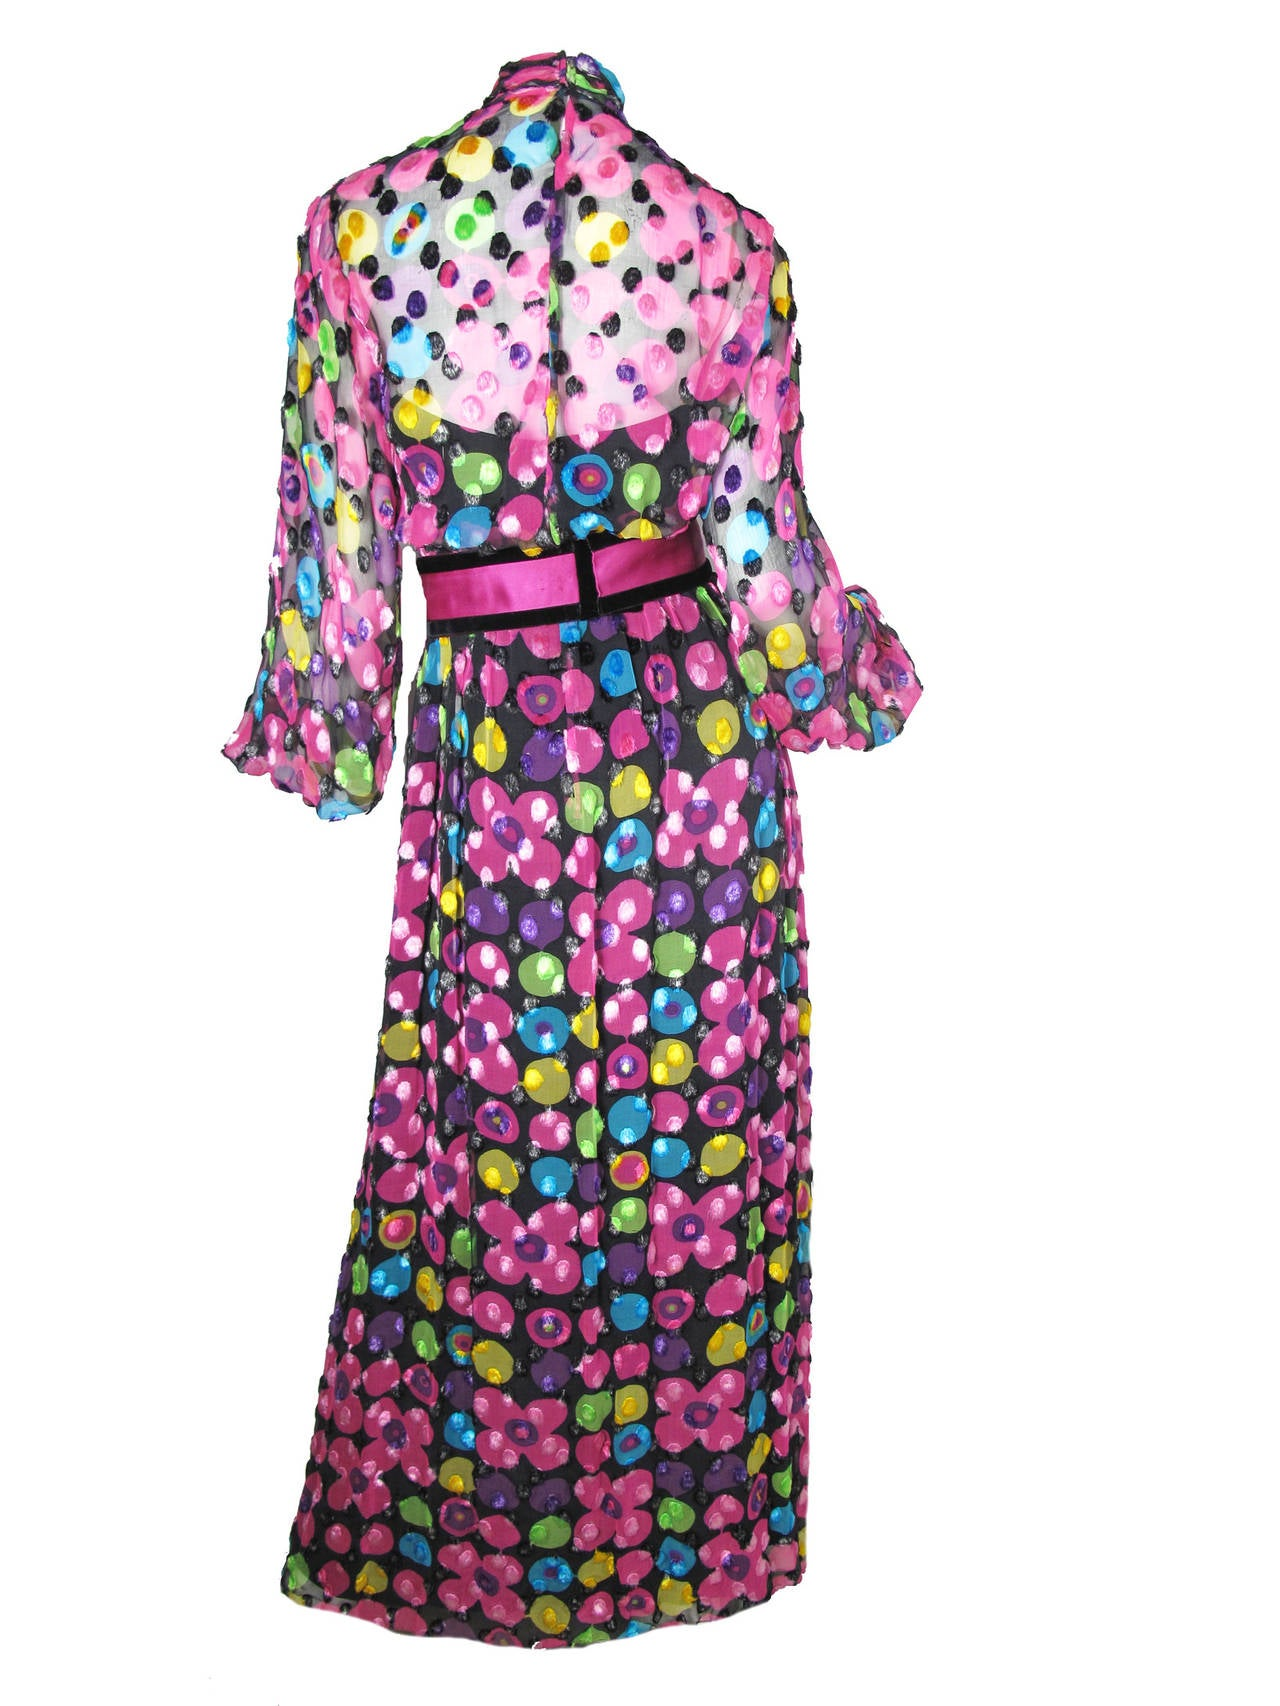 Mollie Parnis Silk Chiffon Maxi Gown with Velvet Dot Design, 1960s  In Excellent Condition For Sale In Austin, TX